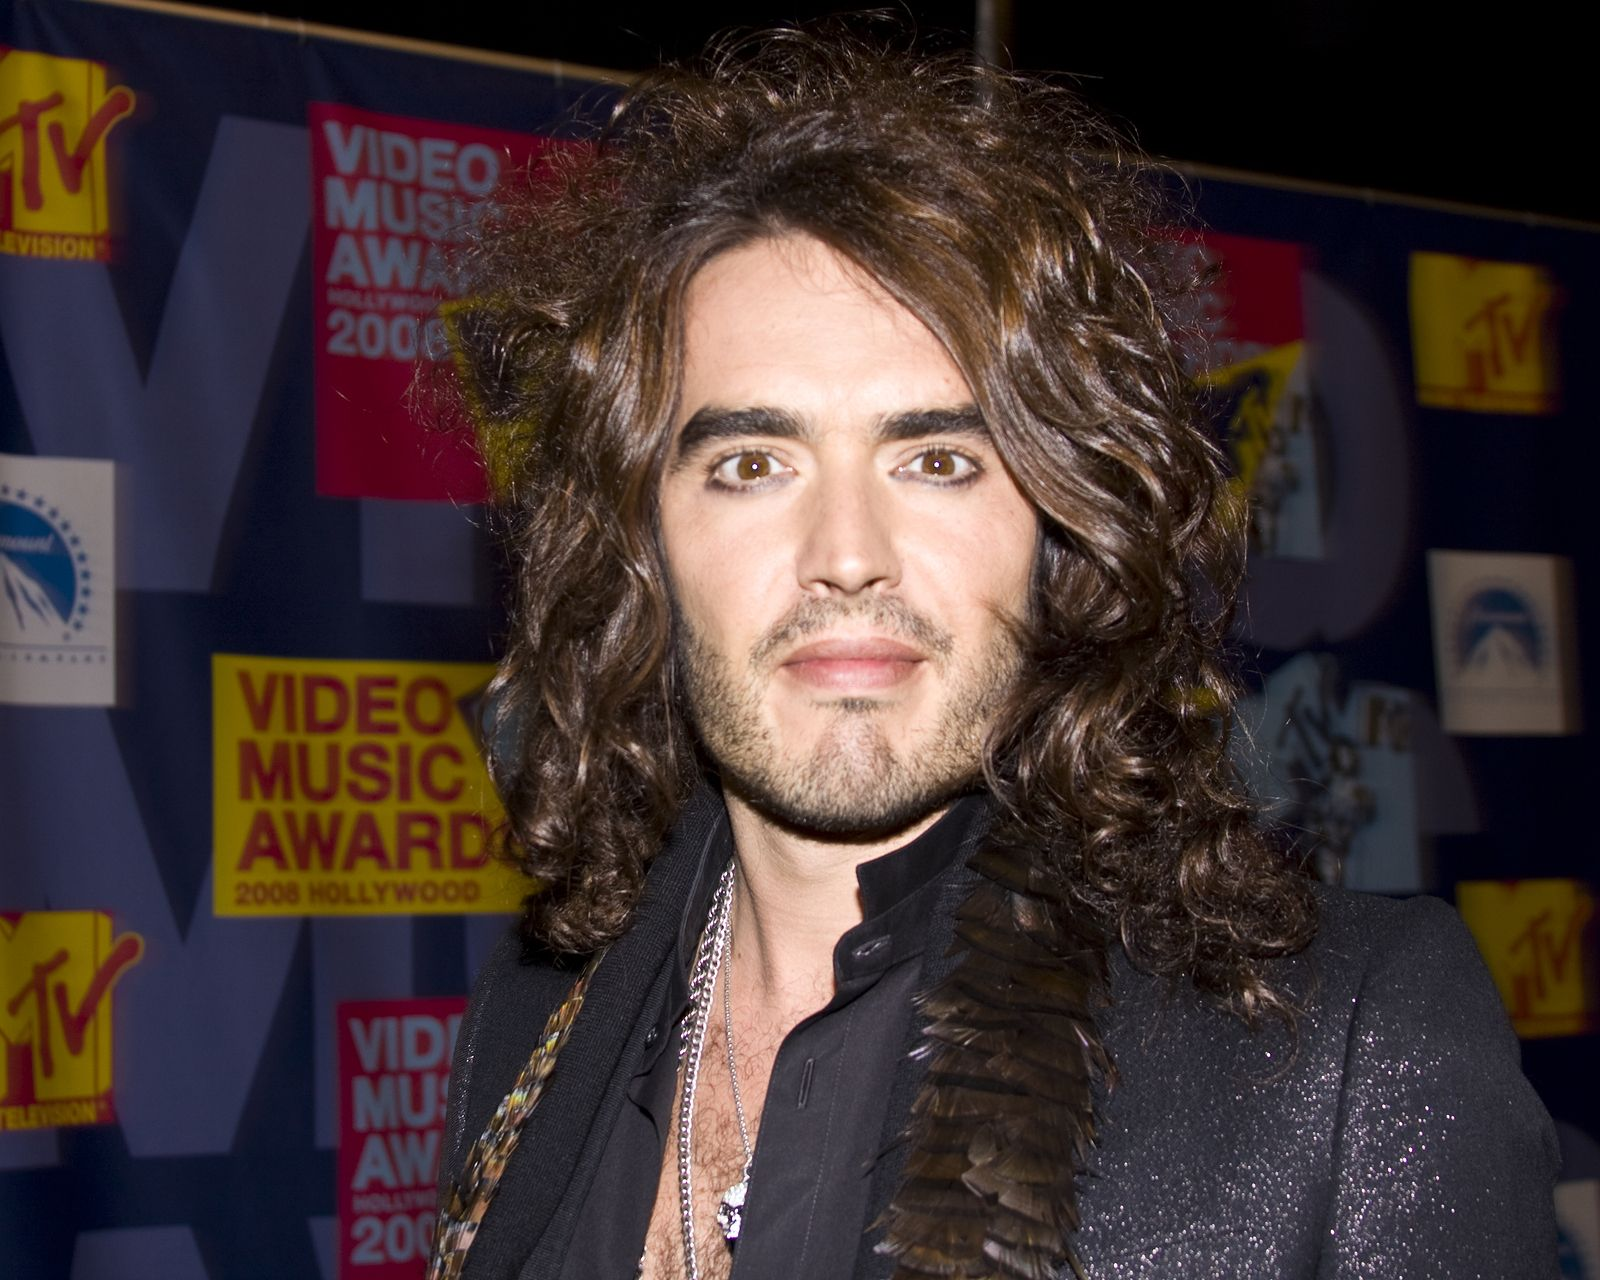 Russell Brand (Host) at the VMA's Taken September 7 2008 at the MTV Video Music Awards at Paramount Studios Hollywood CA slight blurriness